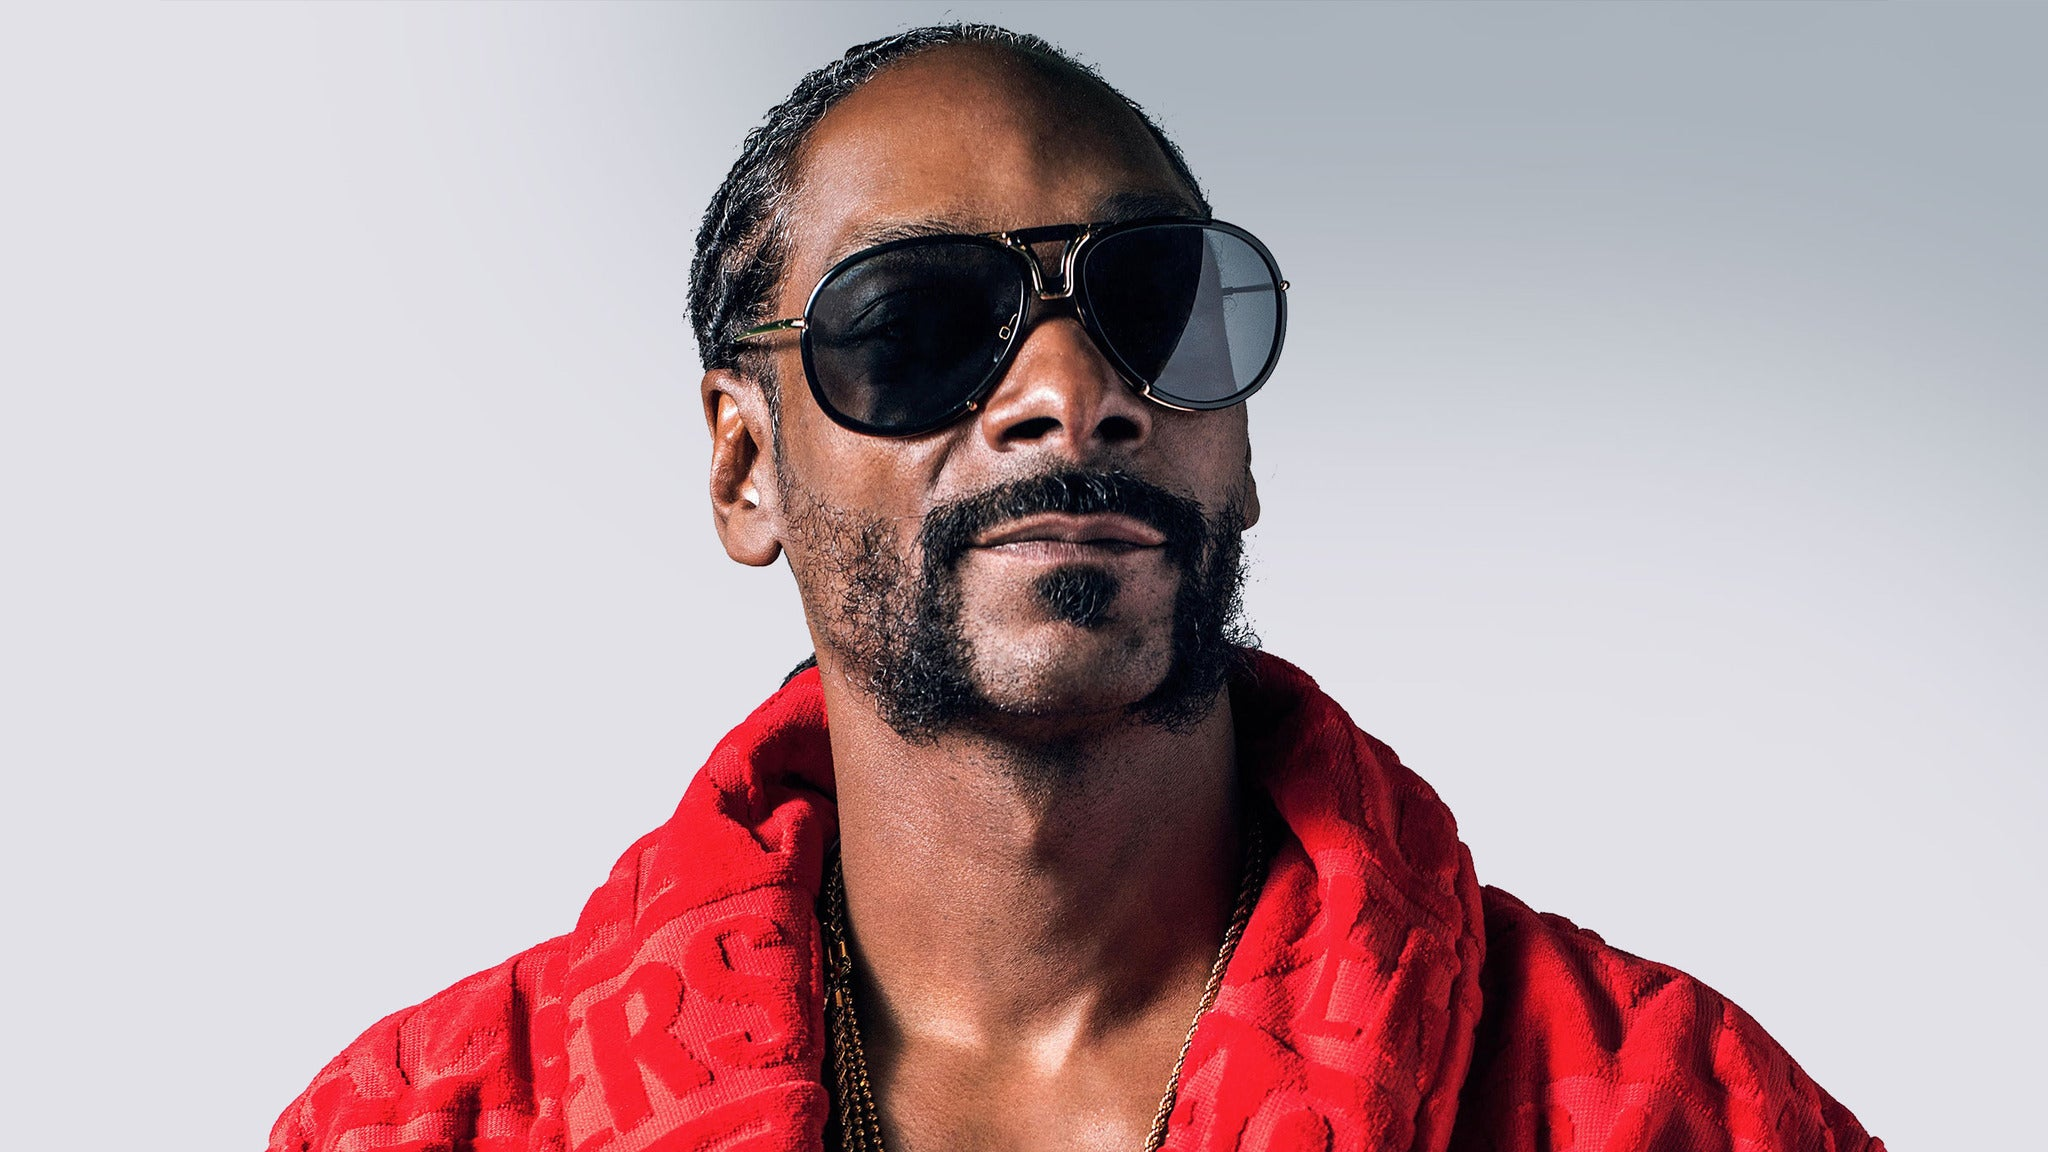 Snoop Dogg's 25th Anniversary Of Doggystyle at Oracle Arena